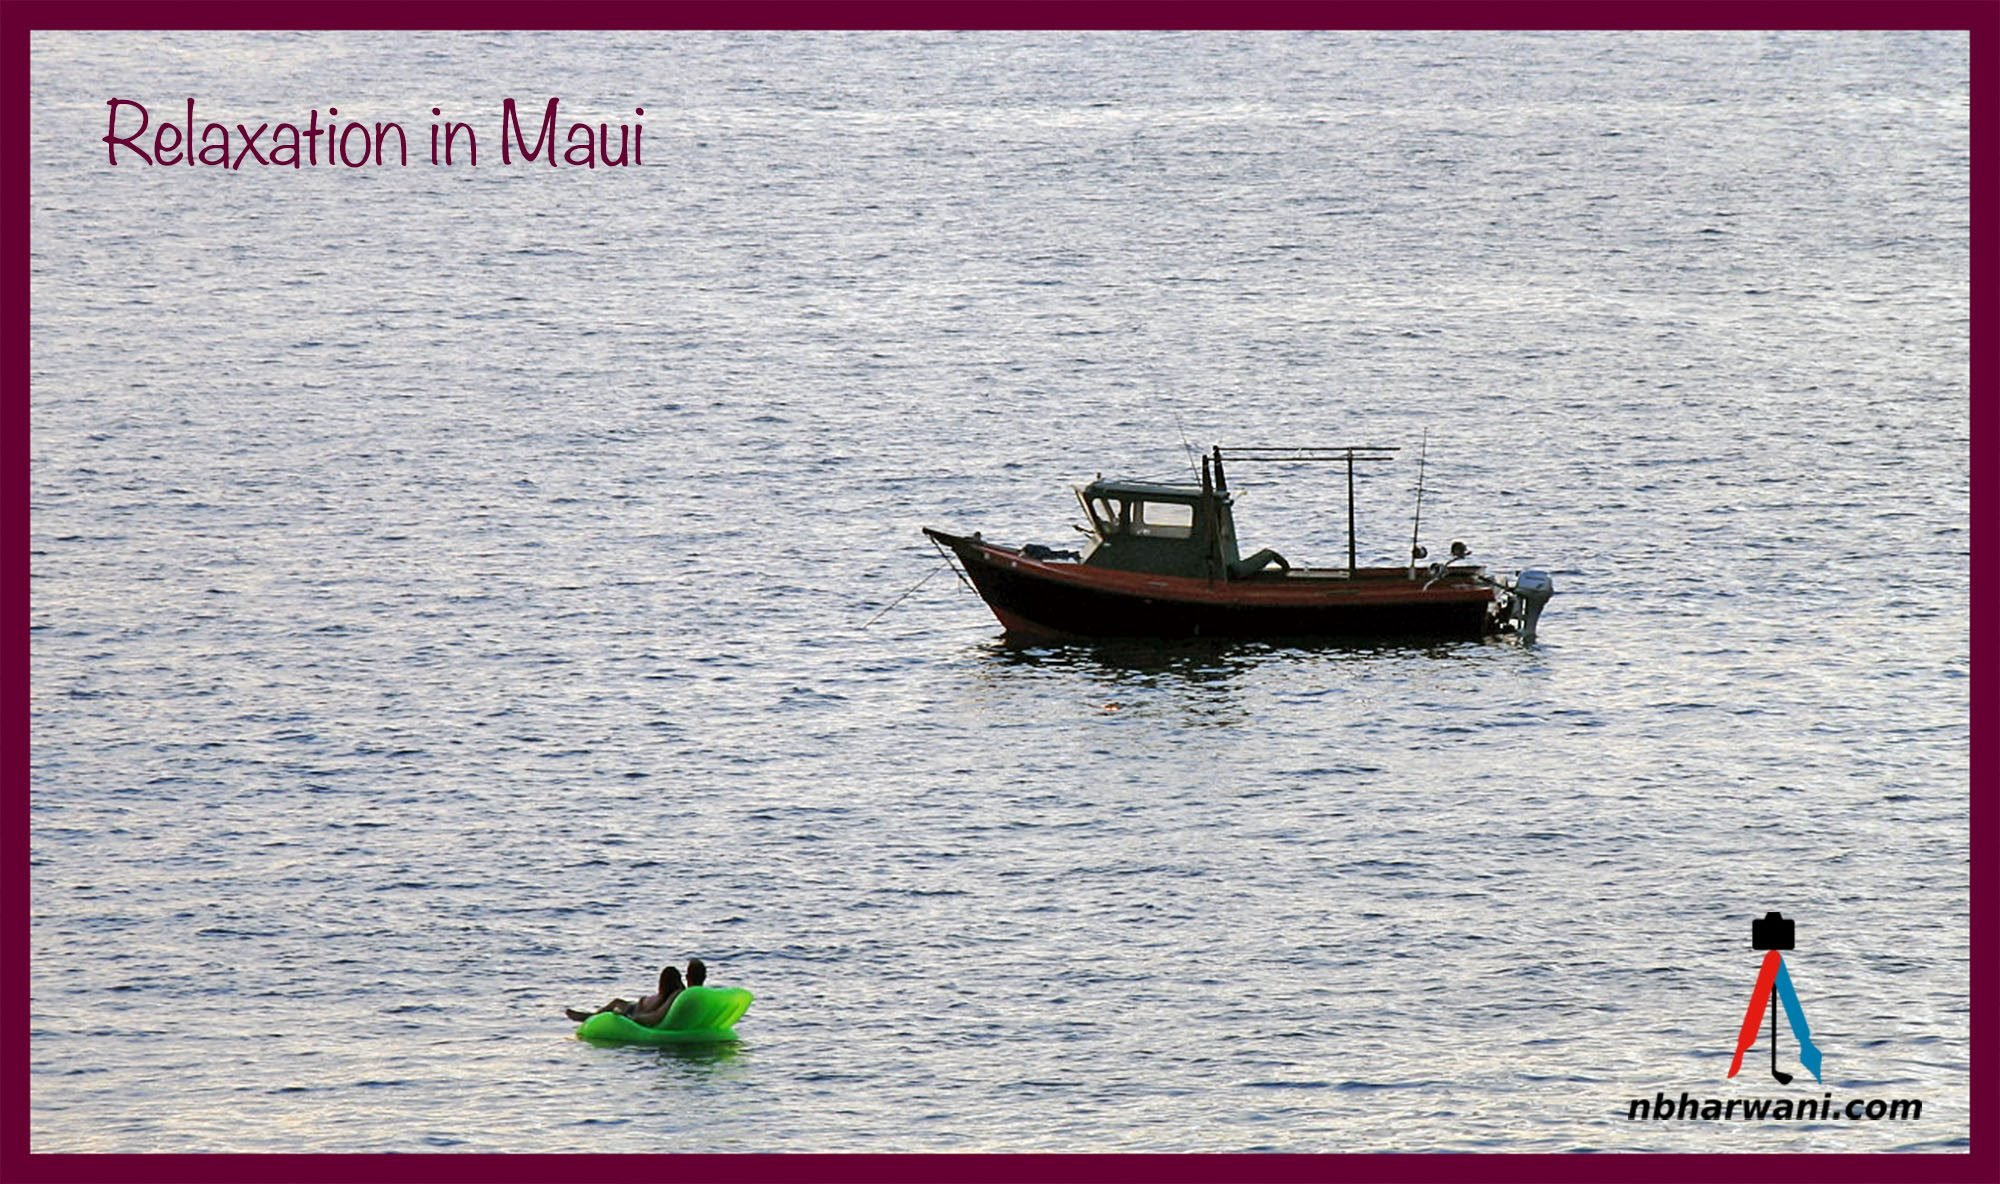 Relaxation in Maui. (Dr. Noorali Bharwani)